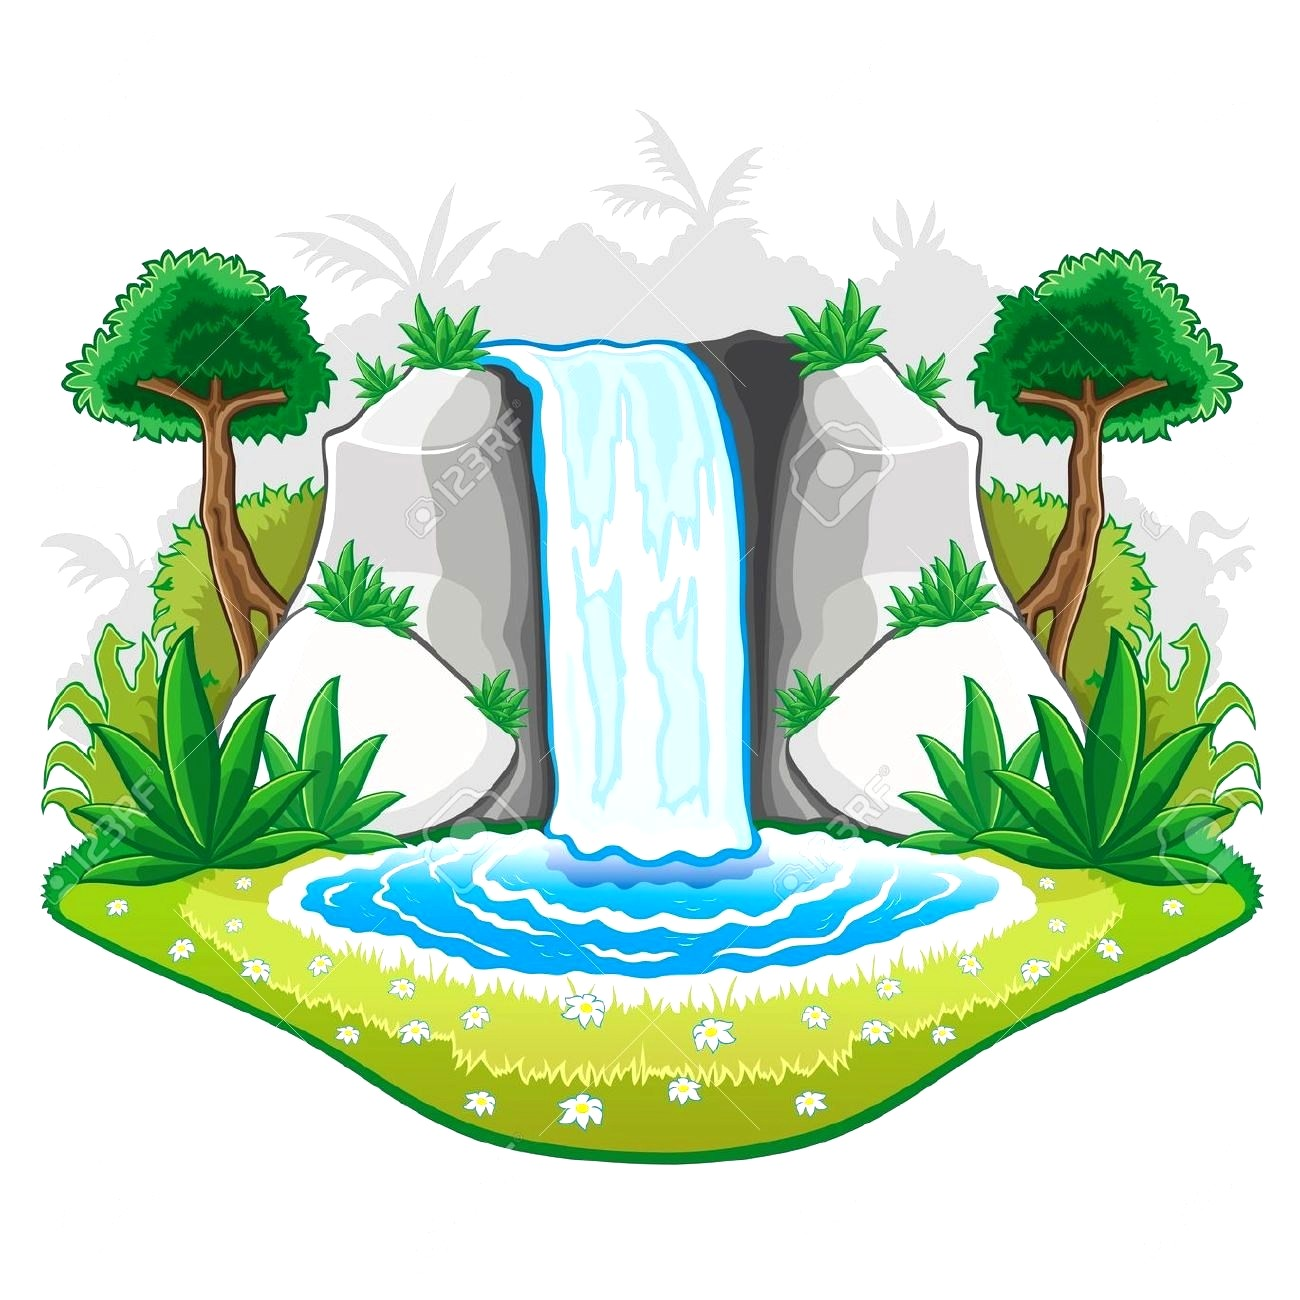 Waterfall image clipart clipart freeuse stock Waterfall clipart » Clipart Station clipart freeuse stock